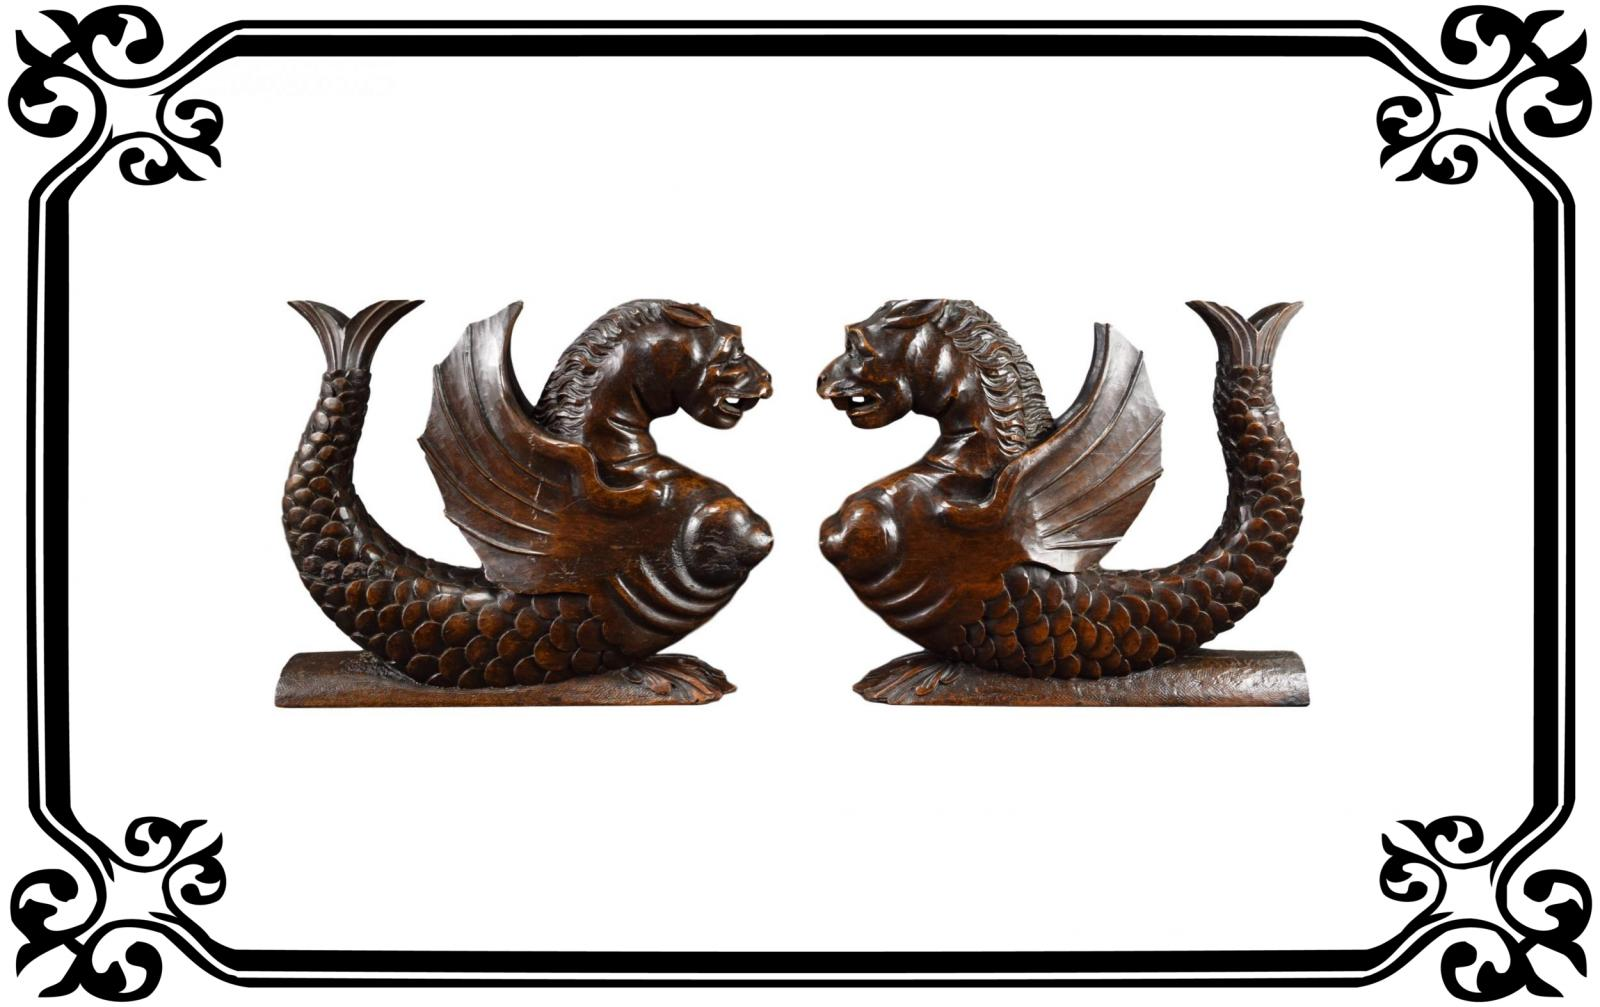 French Carved Wood Griffins - Charmantiques